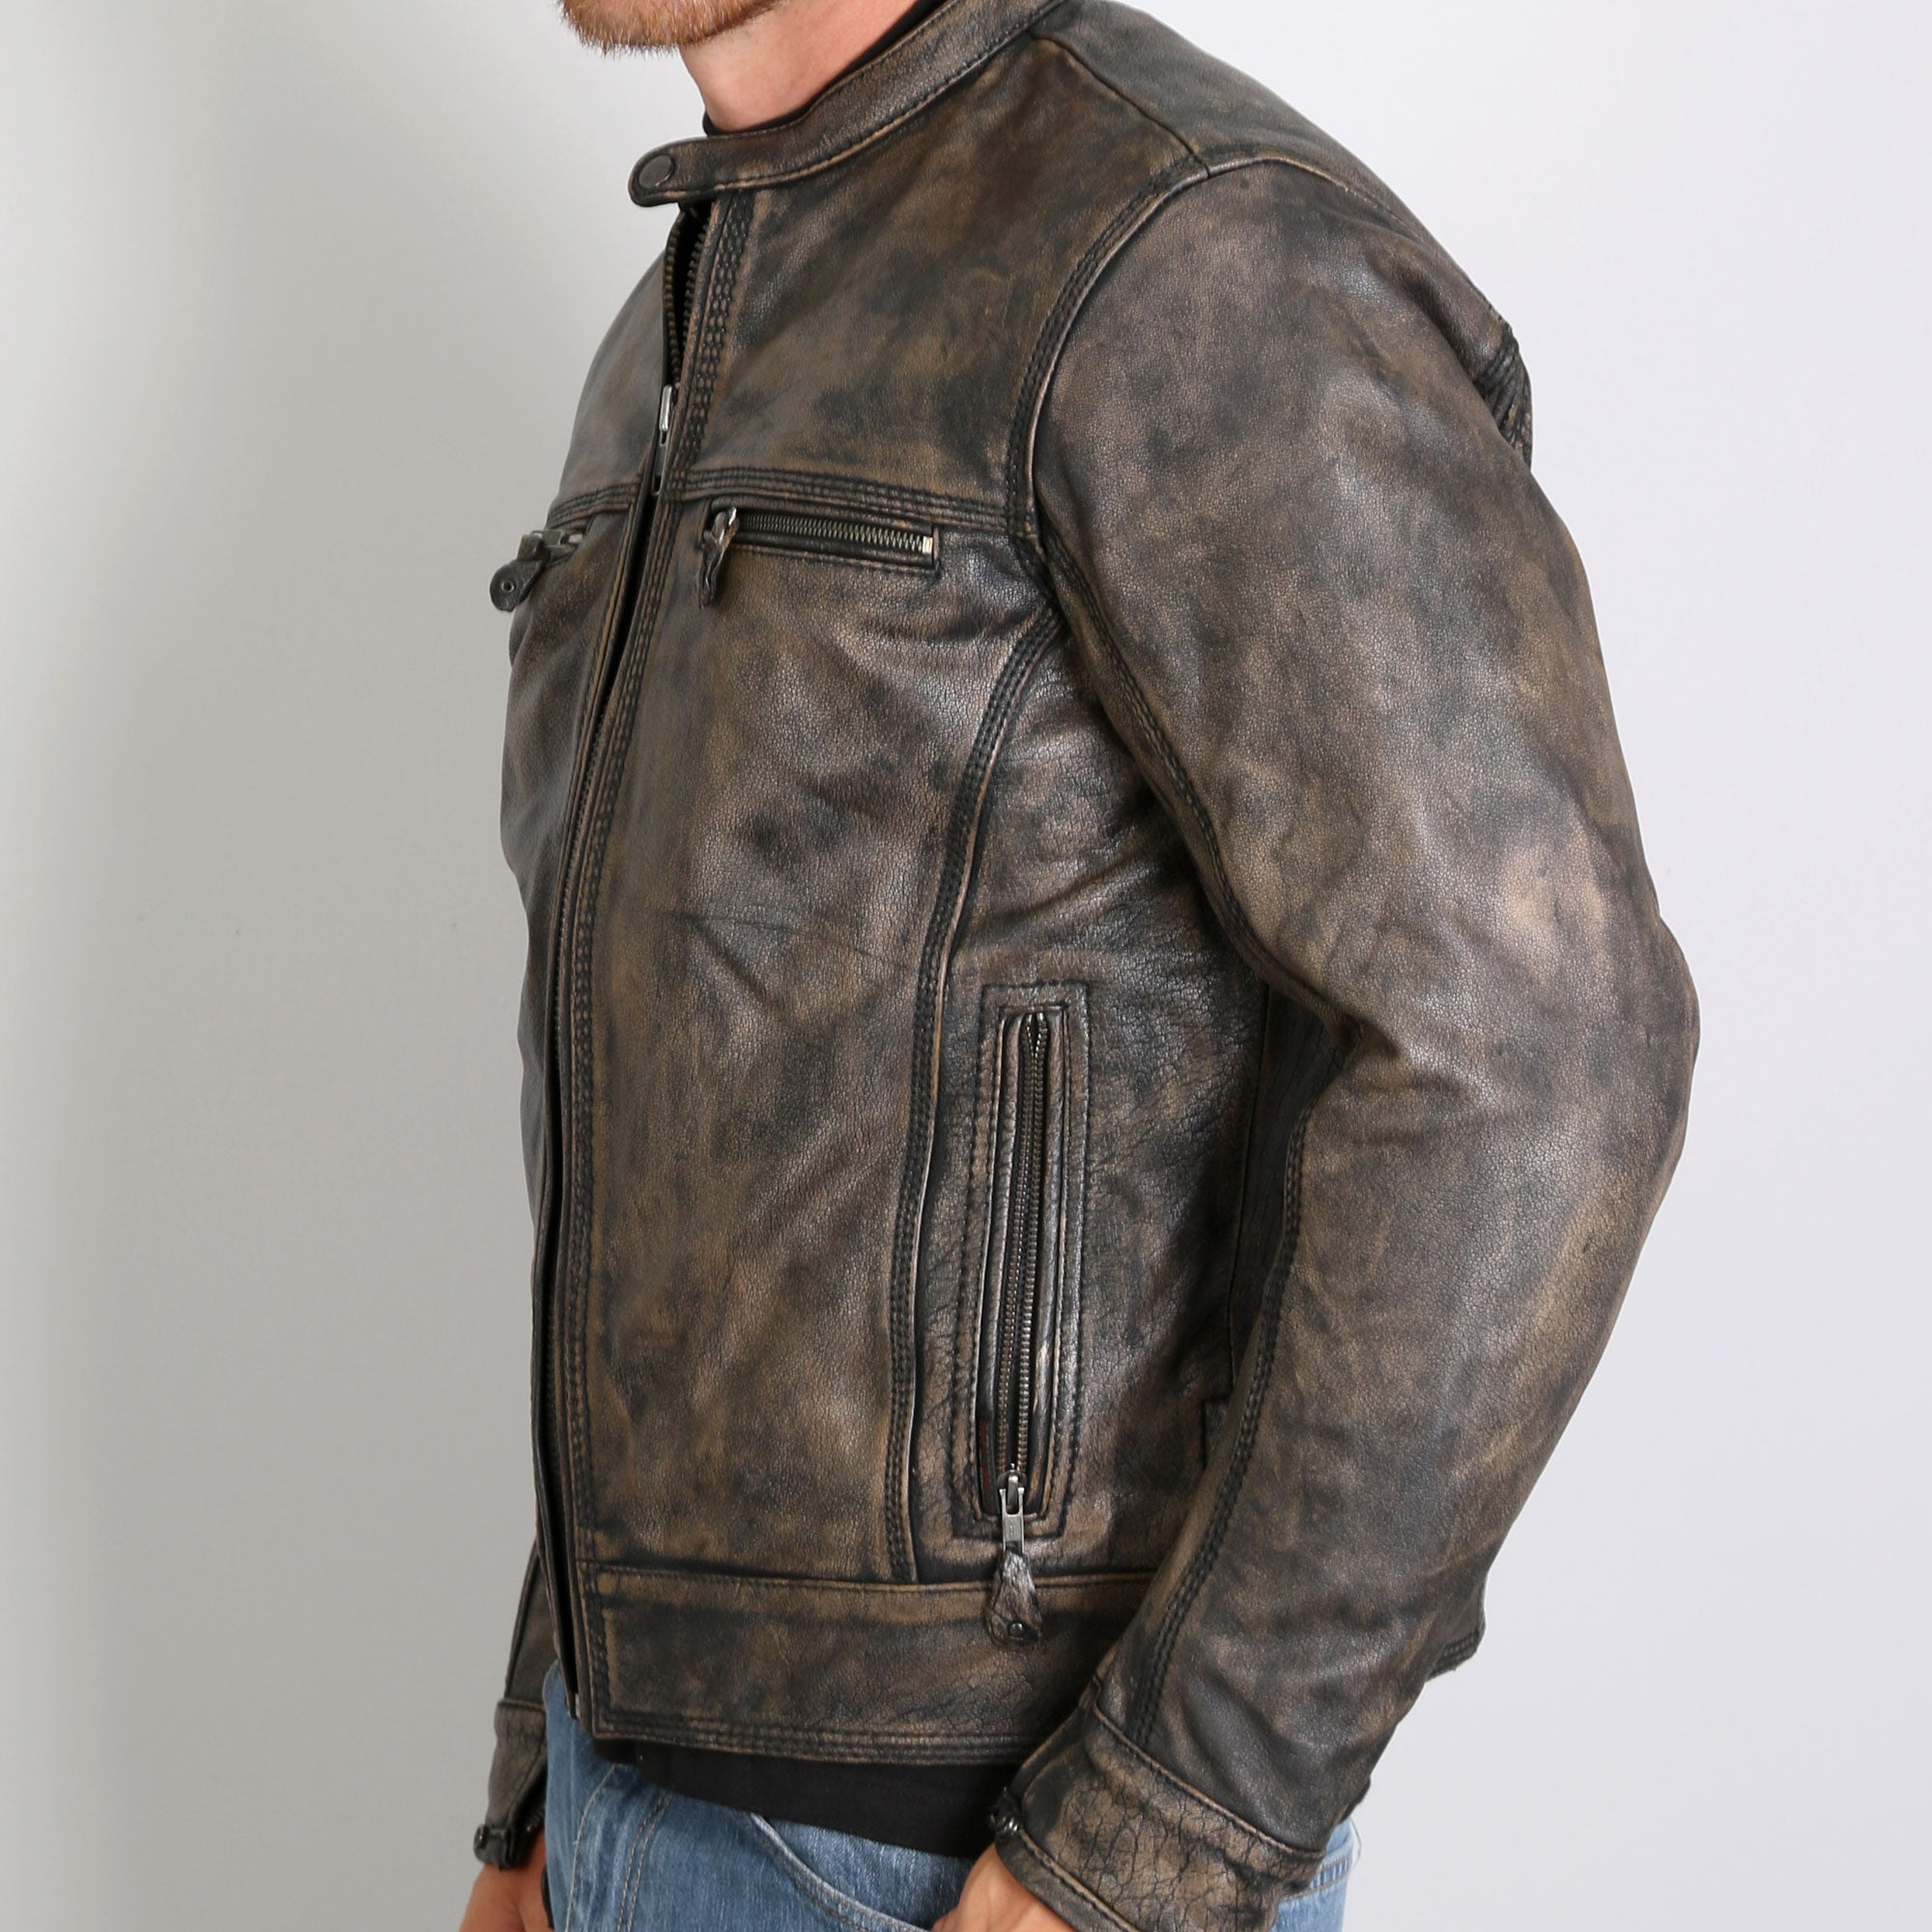 Hot Leathers Men's Distressed Brown Leather Jacket